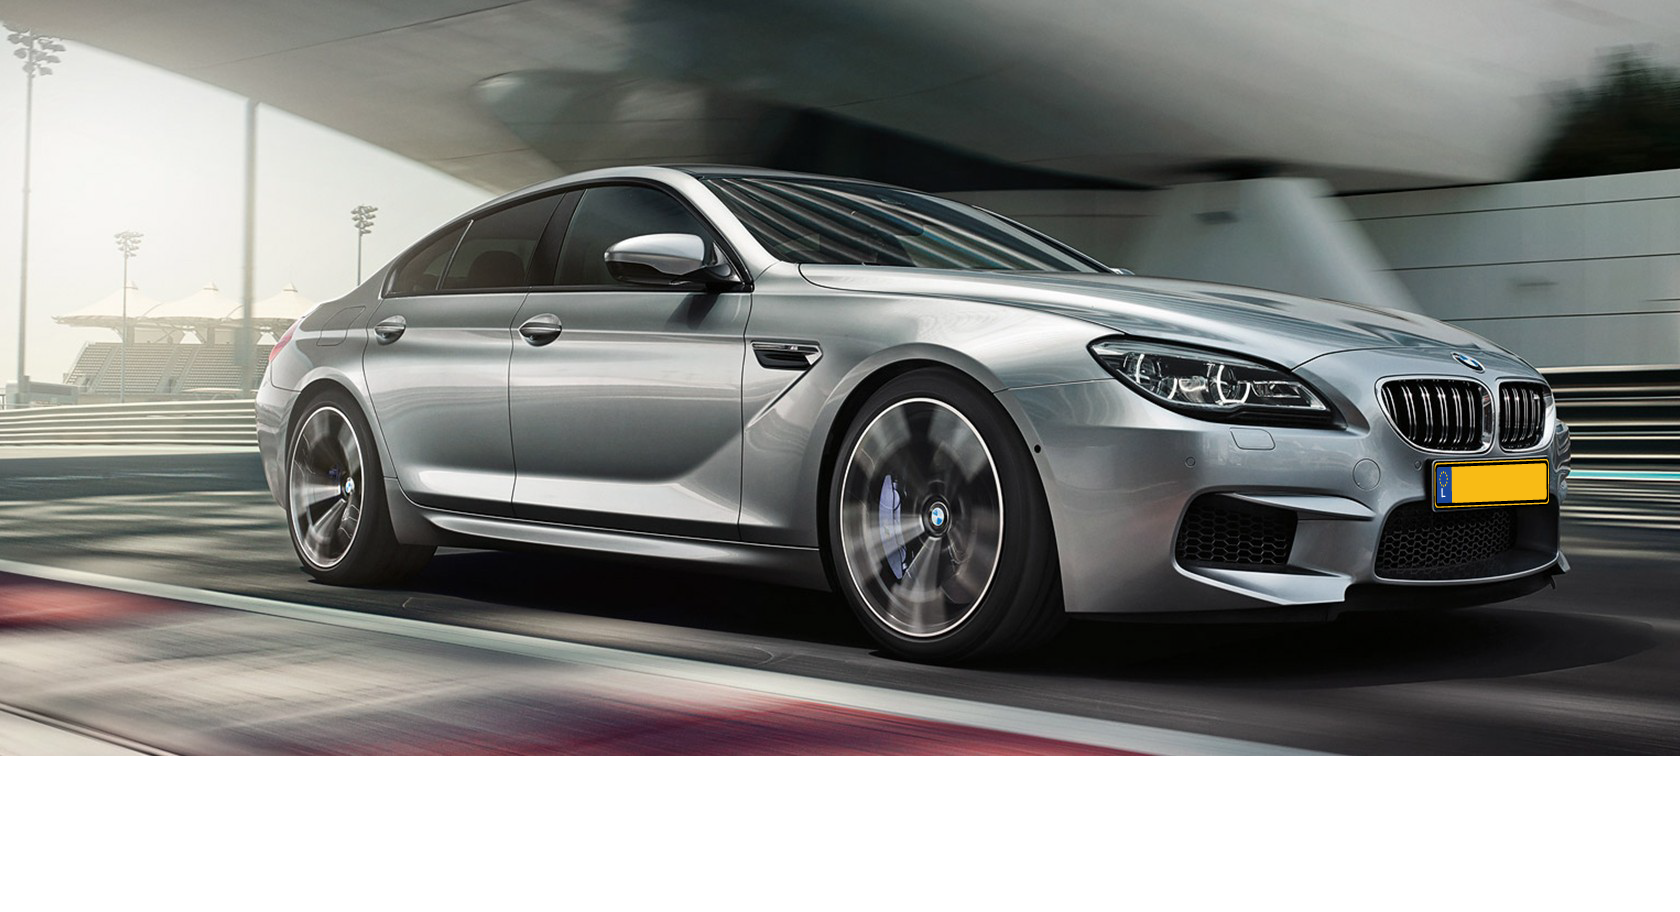 Immatriculation Luxembourg BMW M6